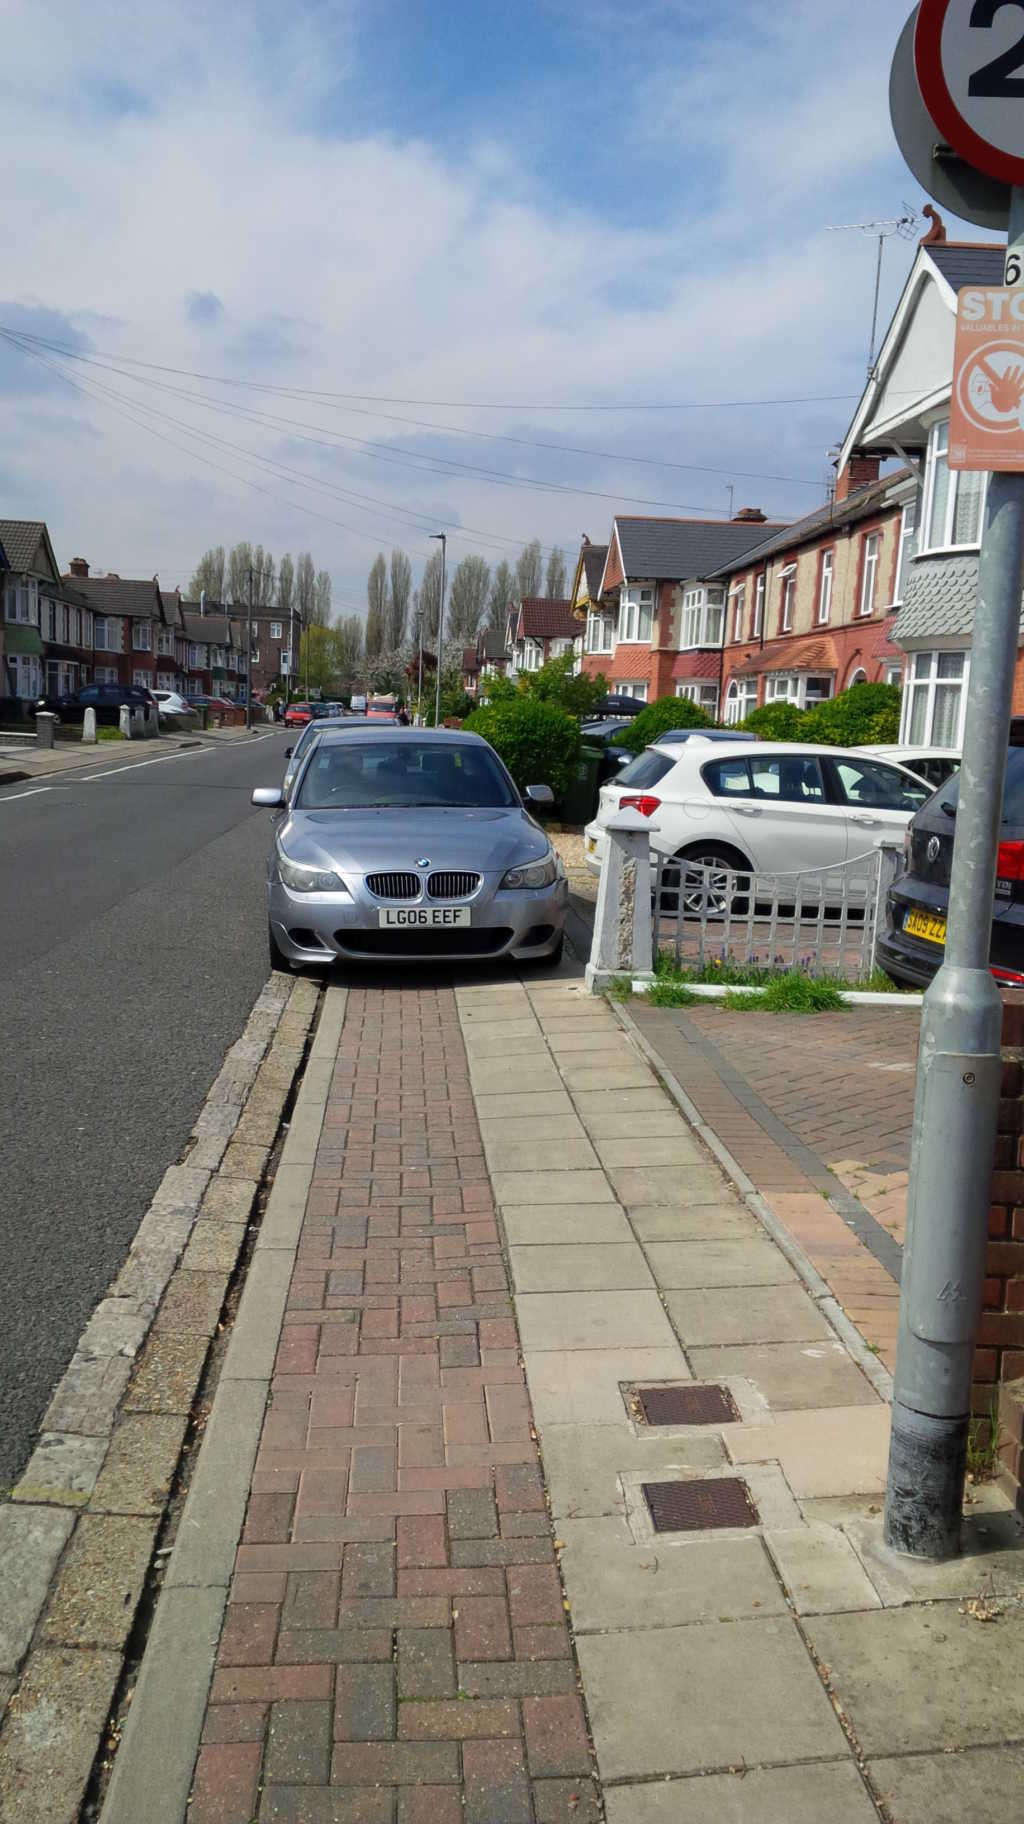 LG06 EEF displaying Inconsiderate Parking